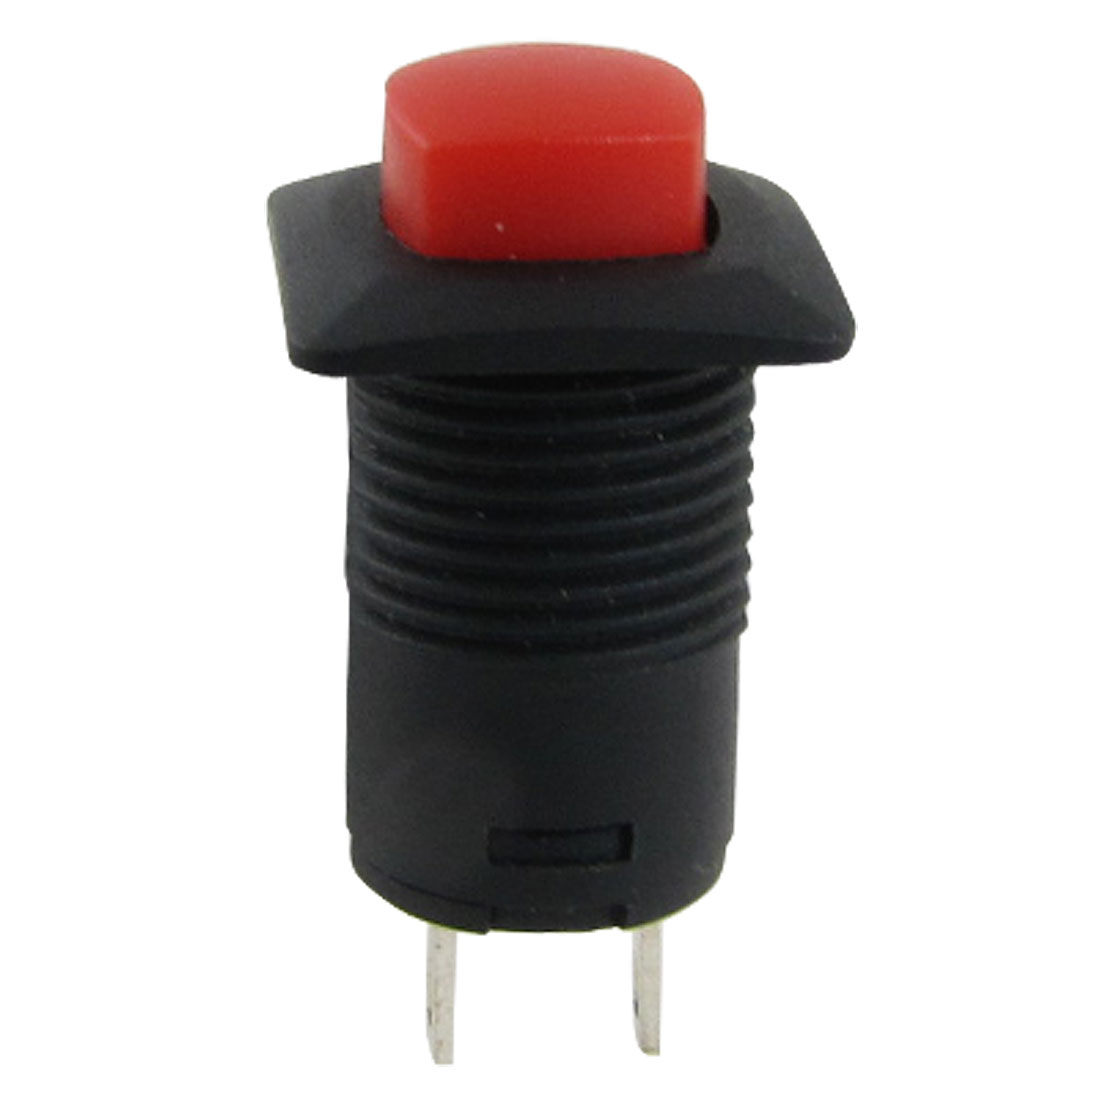 AC 125V /3A 250V/1.5A OFF(ON) N/O Latching Red Cap Push Button Switch